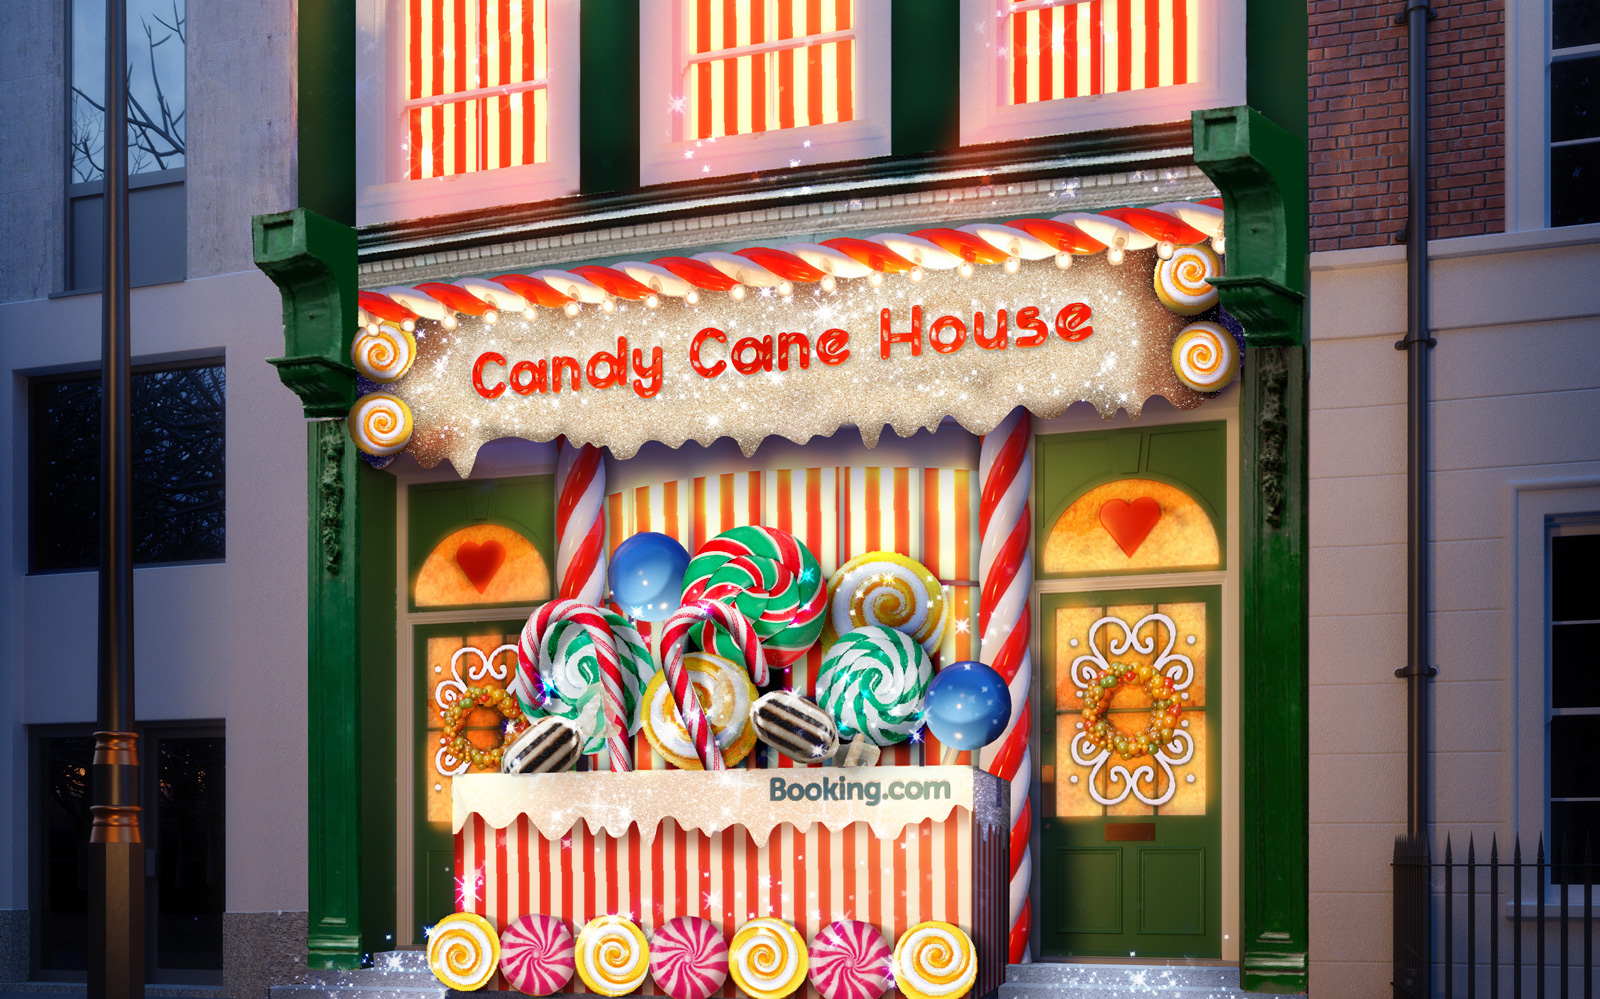 Booking.com candy cane house